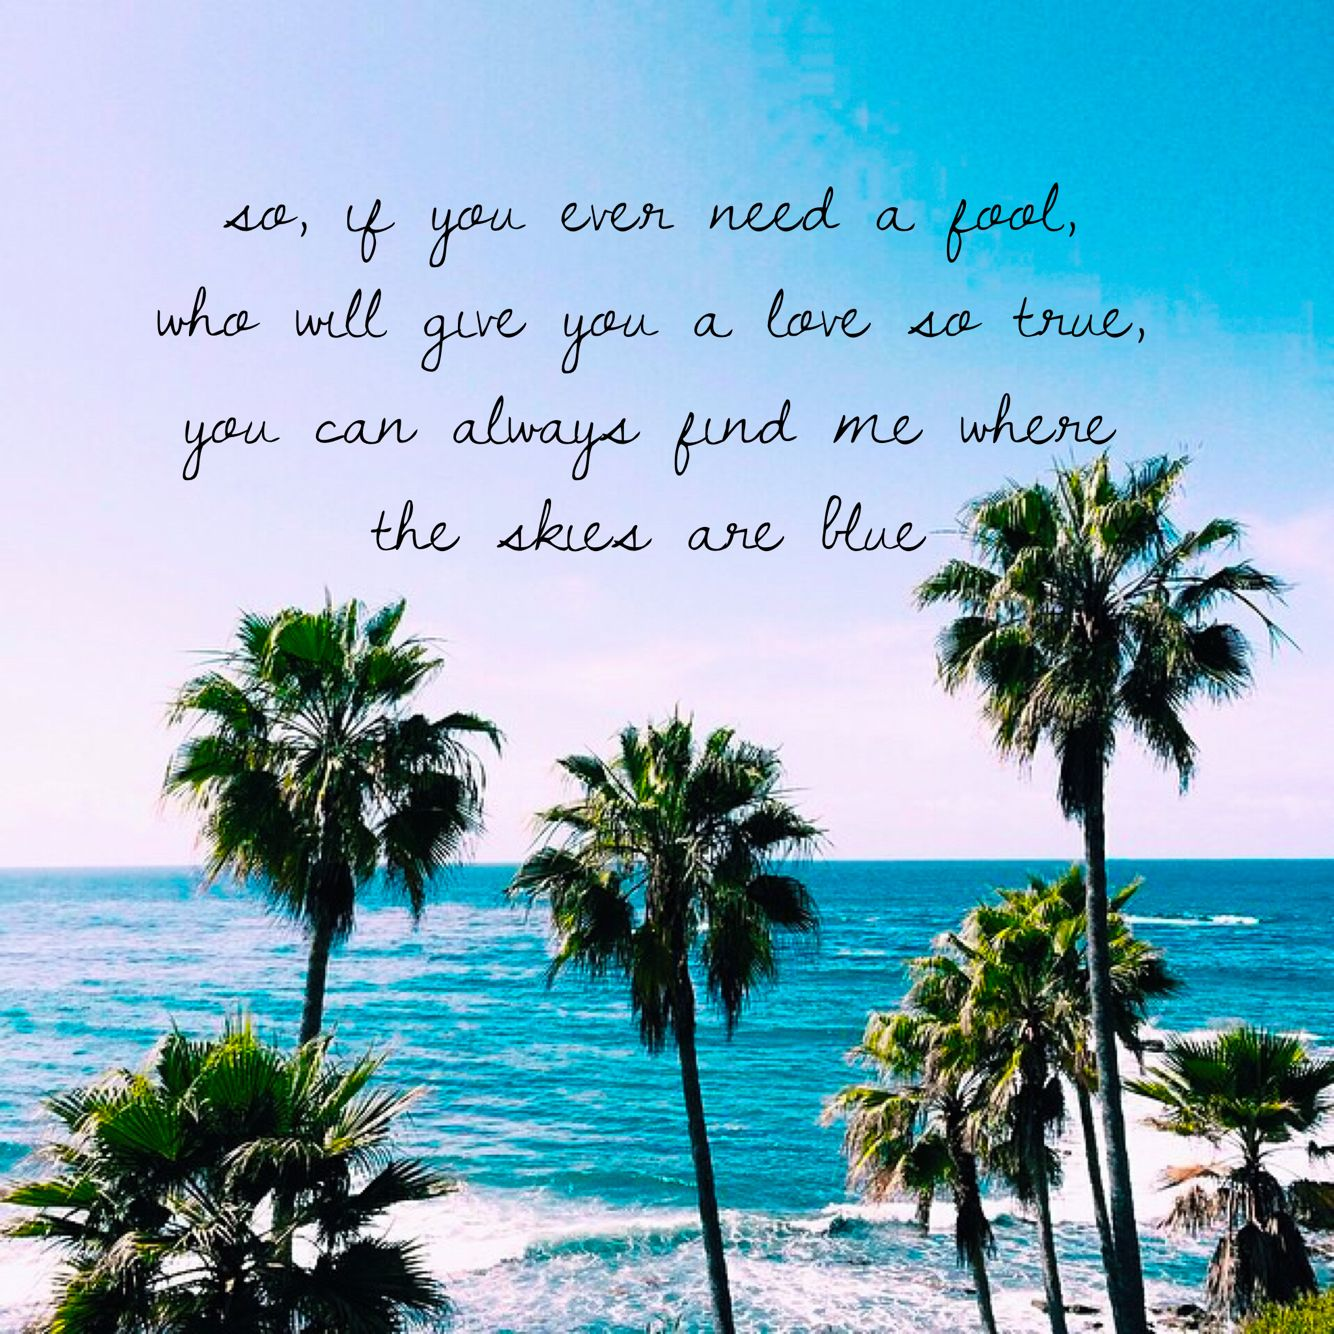 Palm Tree Beach: Where The Skies Are Blue (The Lumineers)